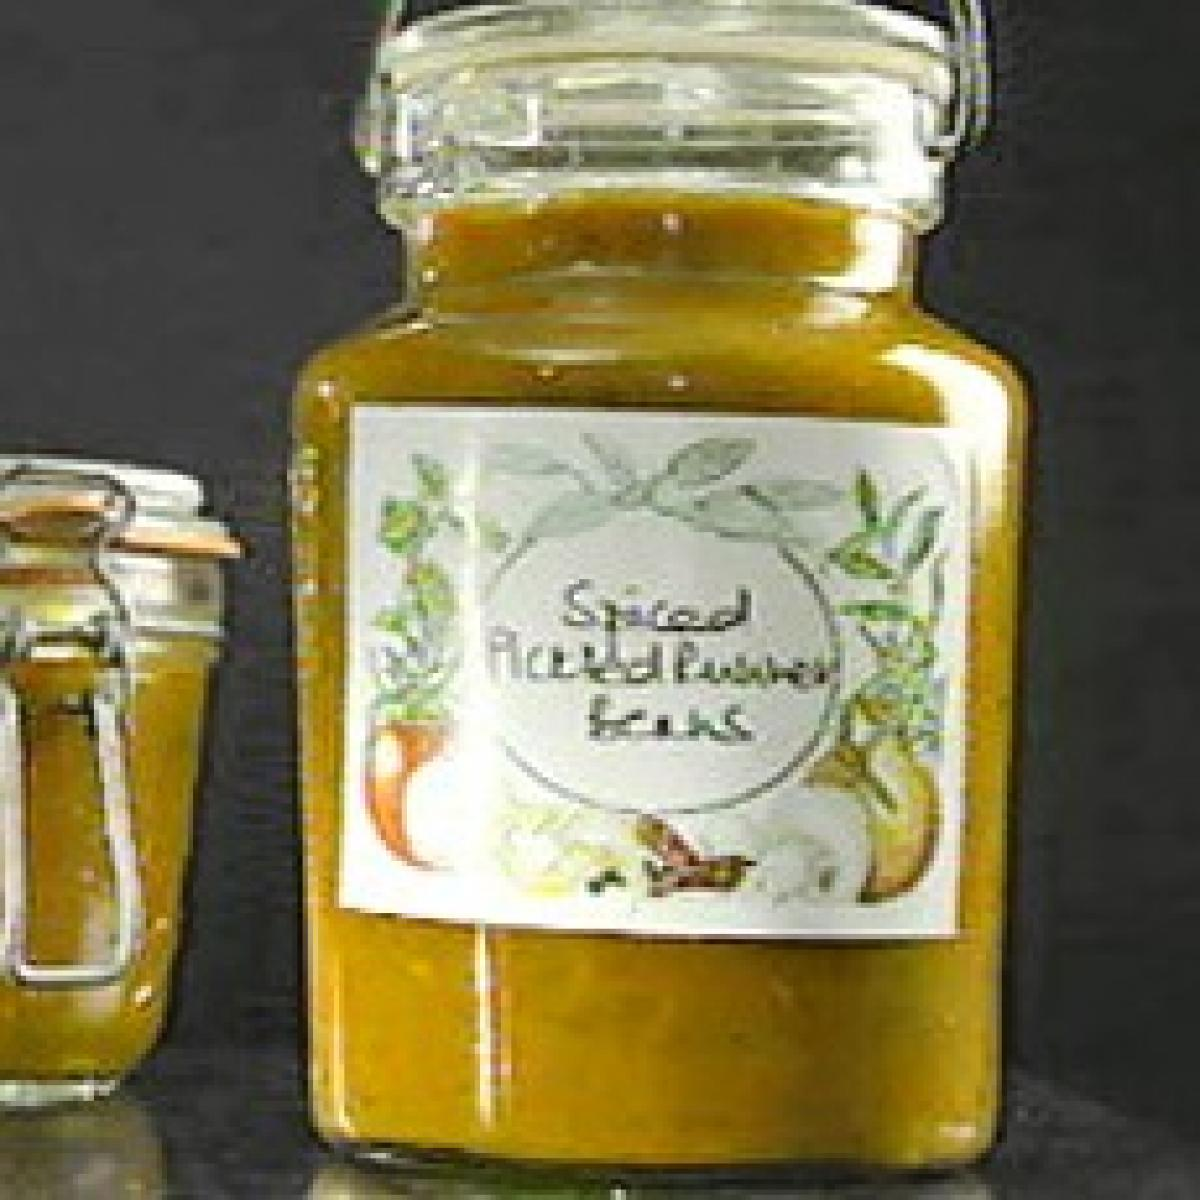 Su203 spiced pickled run 21558